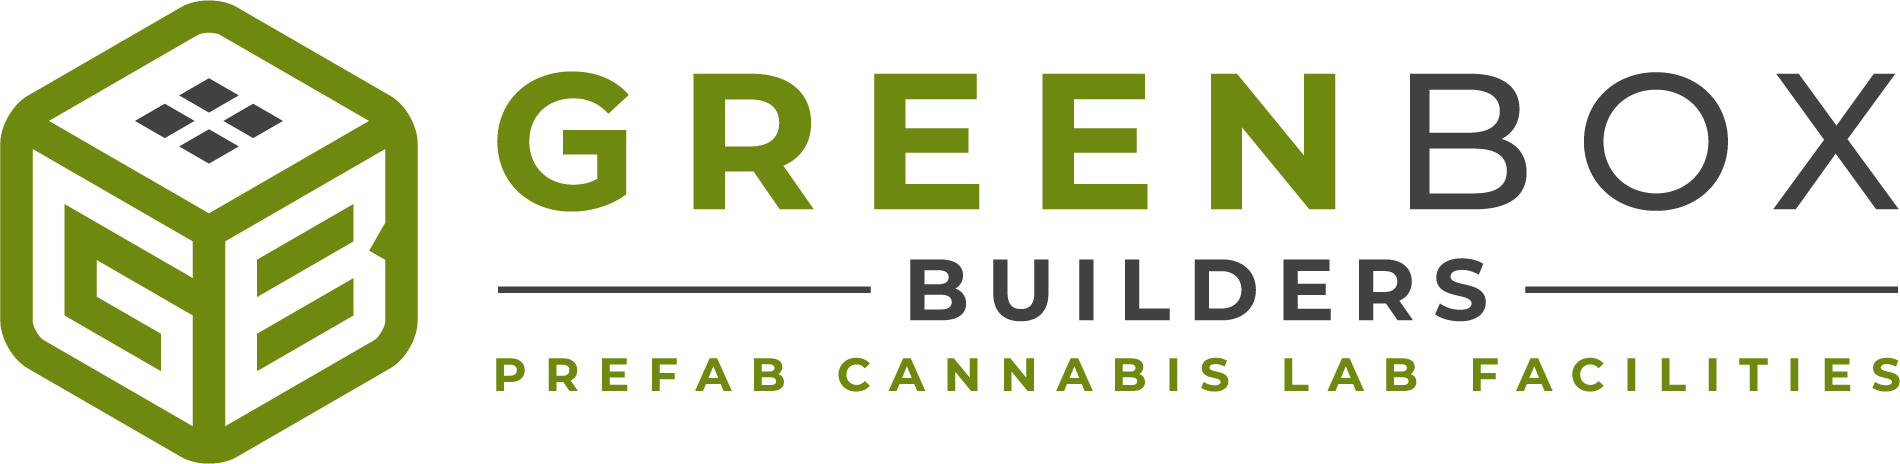 Greenbox Builders – Specialists in Cannabis Facilities